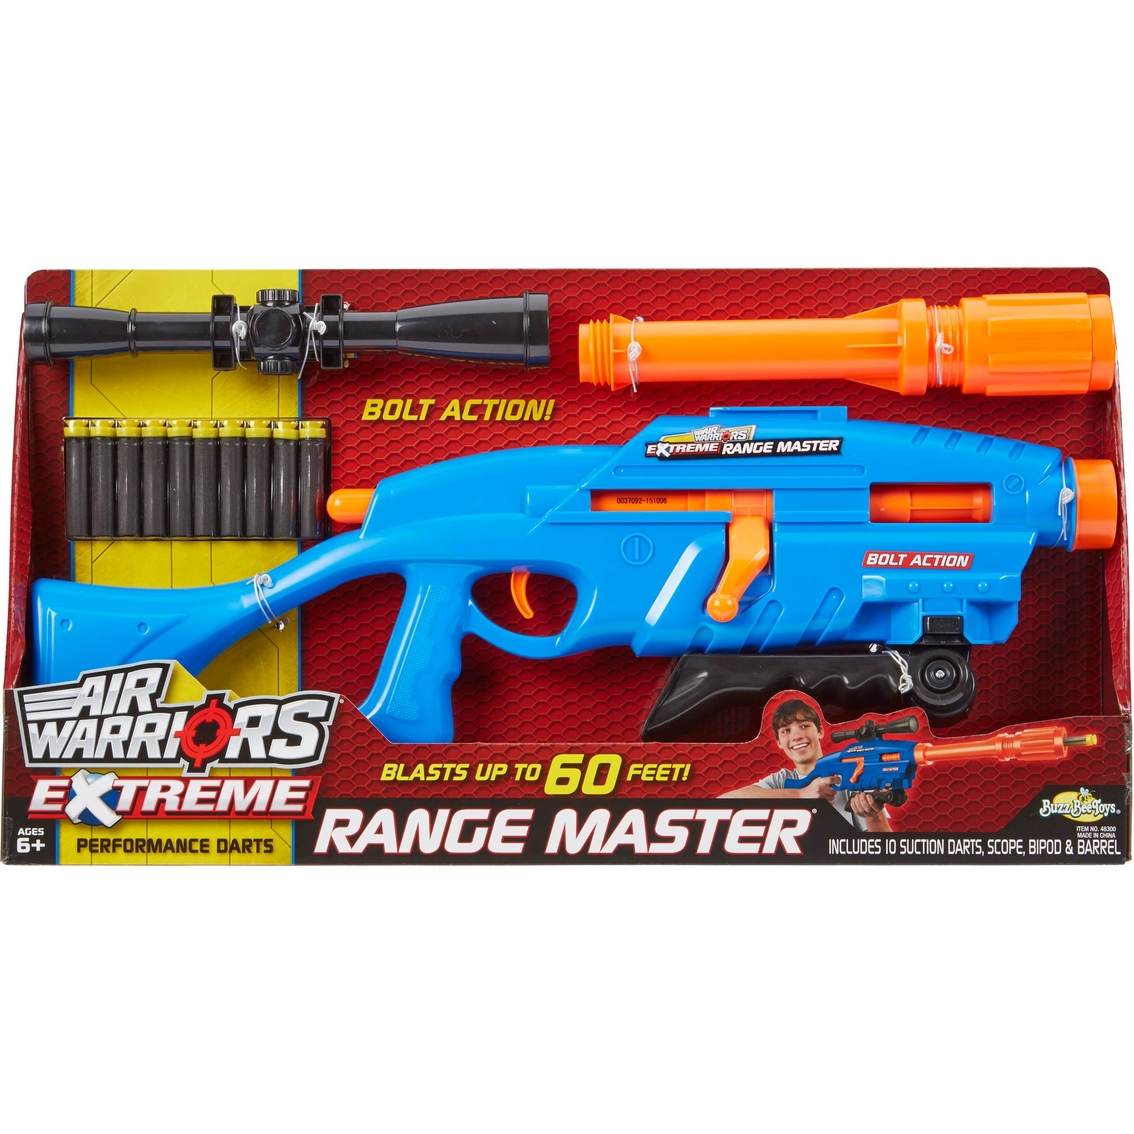 Buzz Bee Toys Air Warriors Extreme Range Master Blaster Blasters Soakers Baby Toys Shop The Exchange